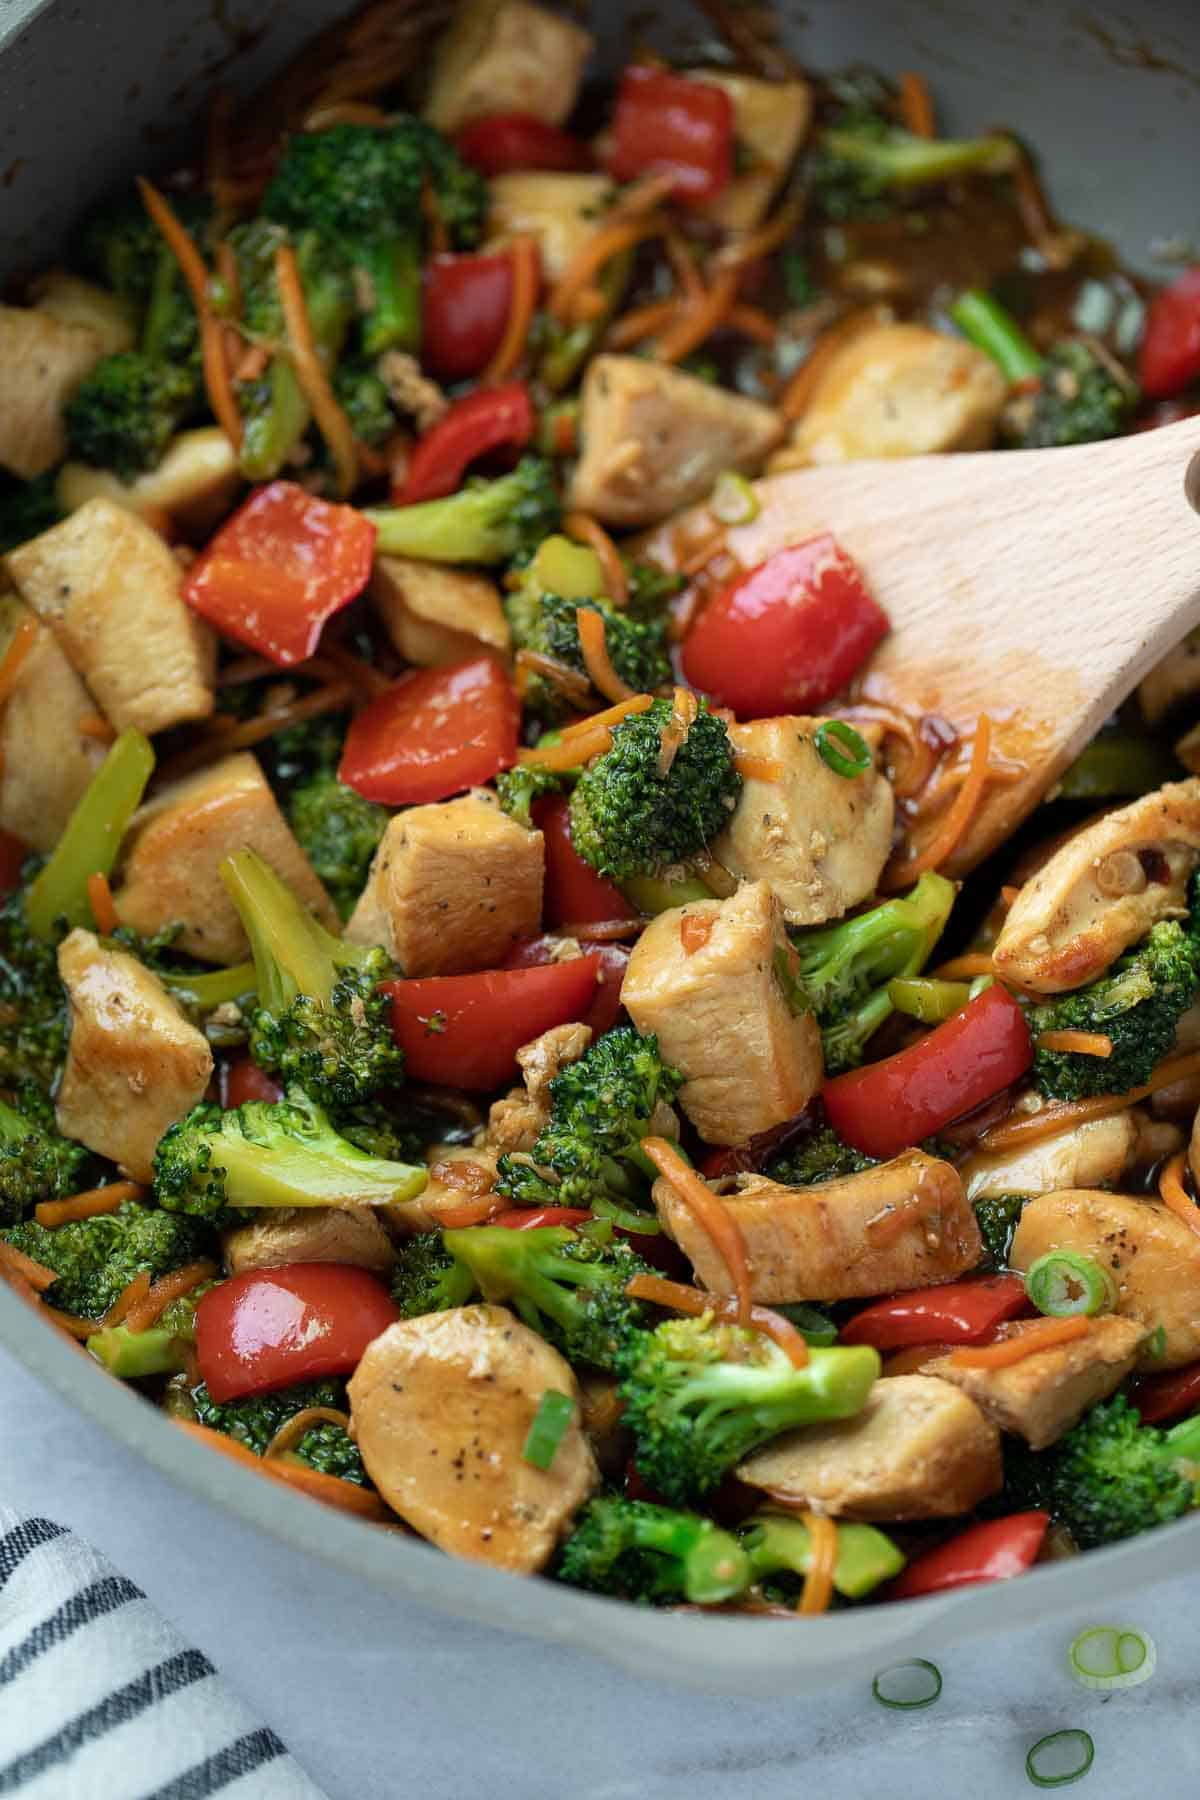 stir fry in skillet with wooden spoon